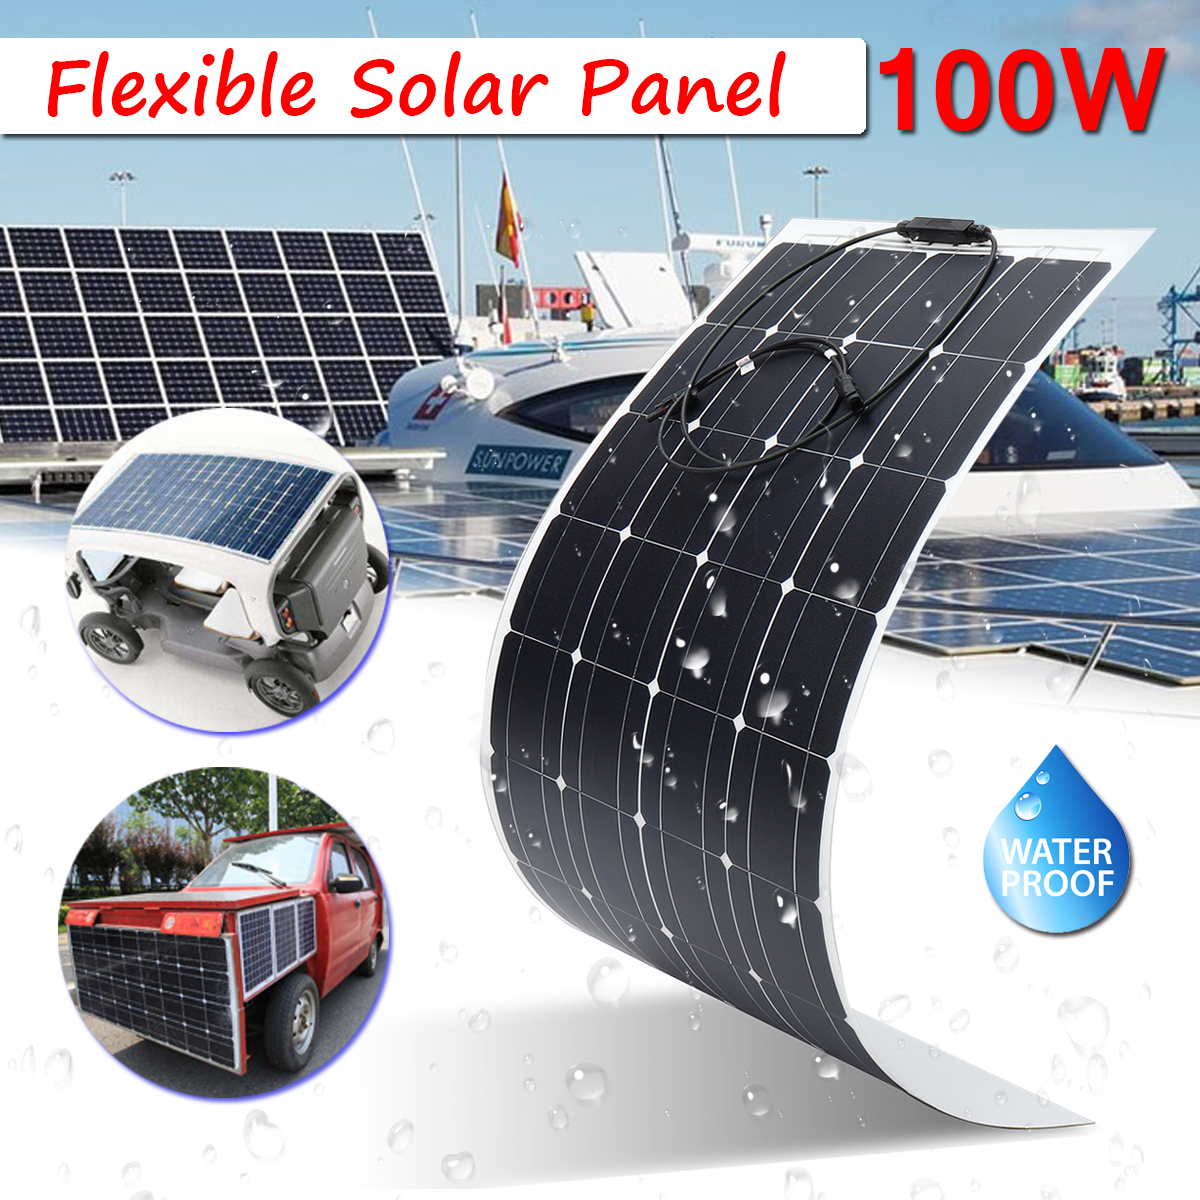 For Home RV Boat 100W 18V Semi Flexible Solar Panel Off Grid Mono Silicon Waterproof 23.5% Efficiency Super Thin Design Safety